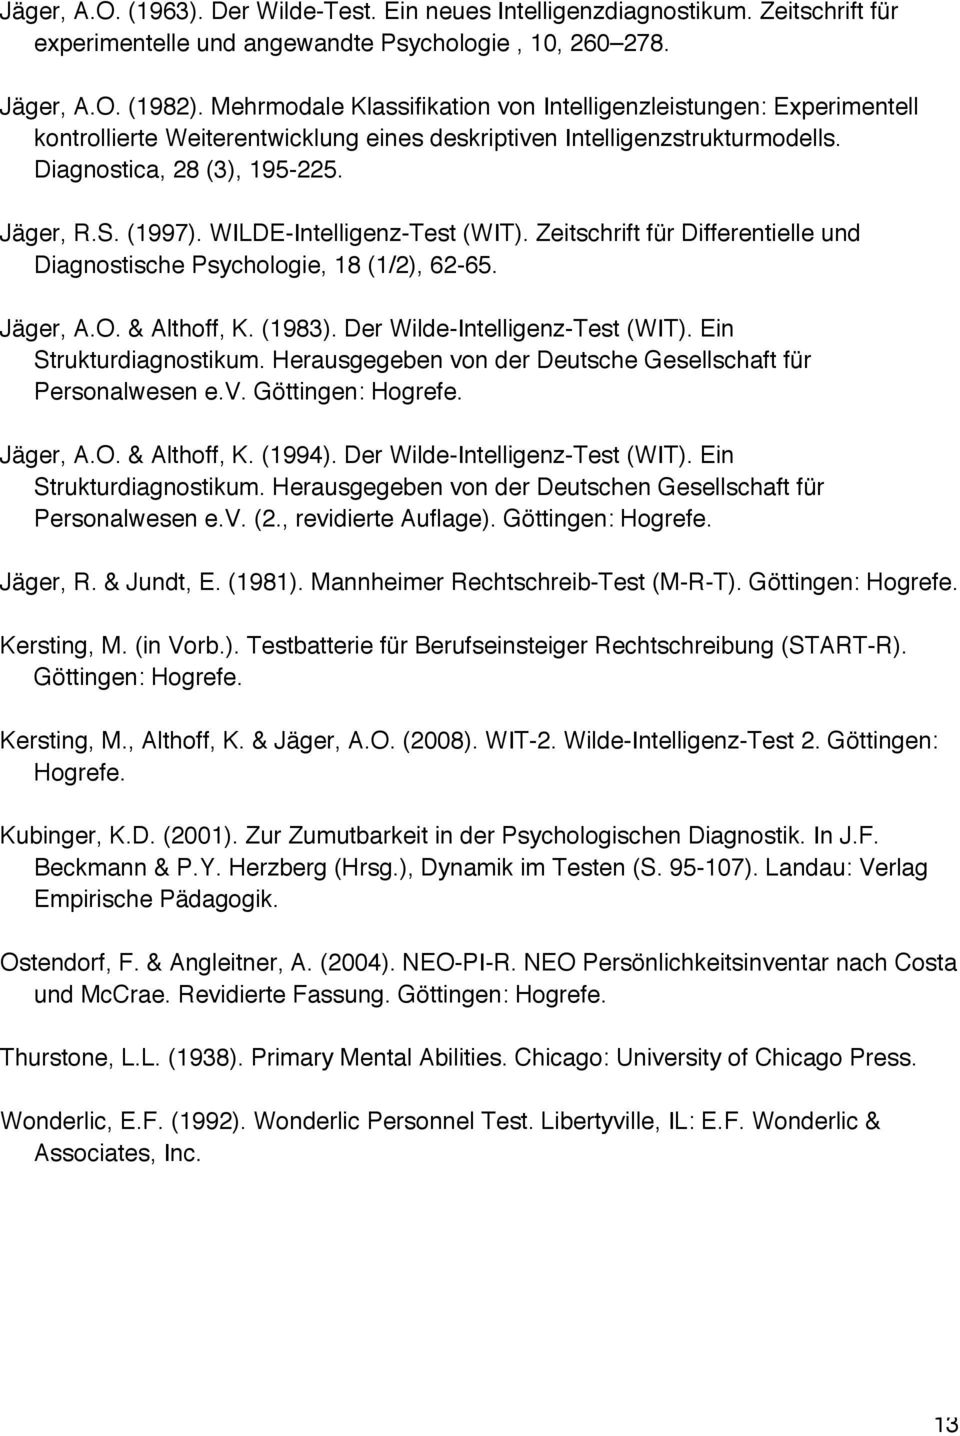 WILDE-Intelligenz-Test (WIT). Zeitschrift für Differentielle und Diagnostische Psychologie, 18 (1/2), 62-65. Jäger, A.O. & Althoff, K. (1983). Der Wilde-Intelligenz-Test (WIT).